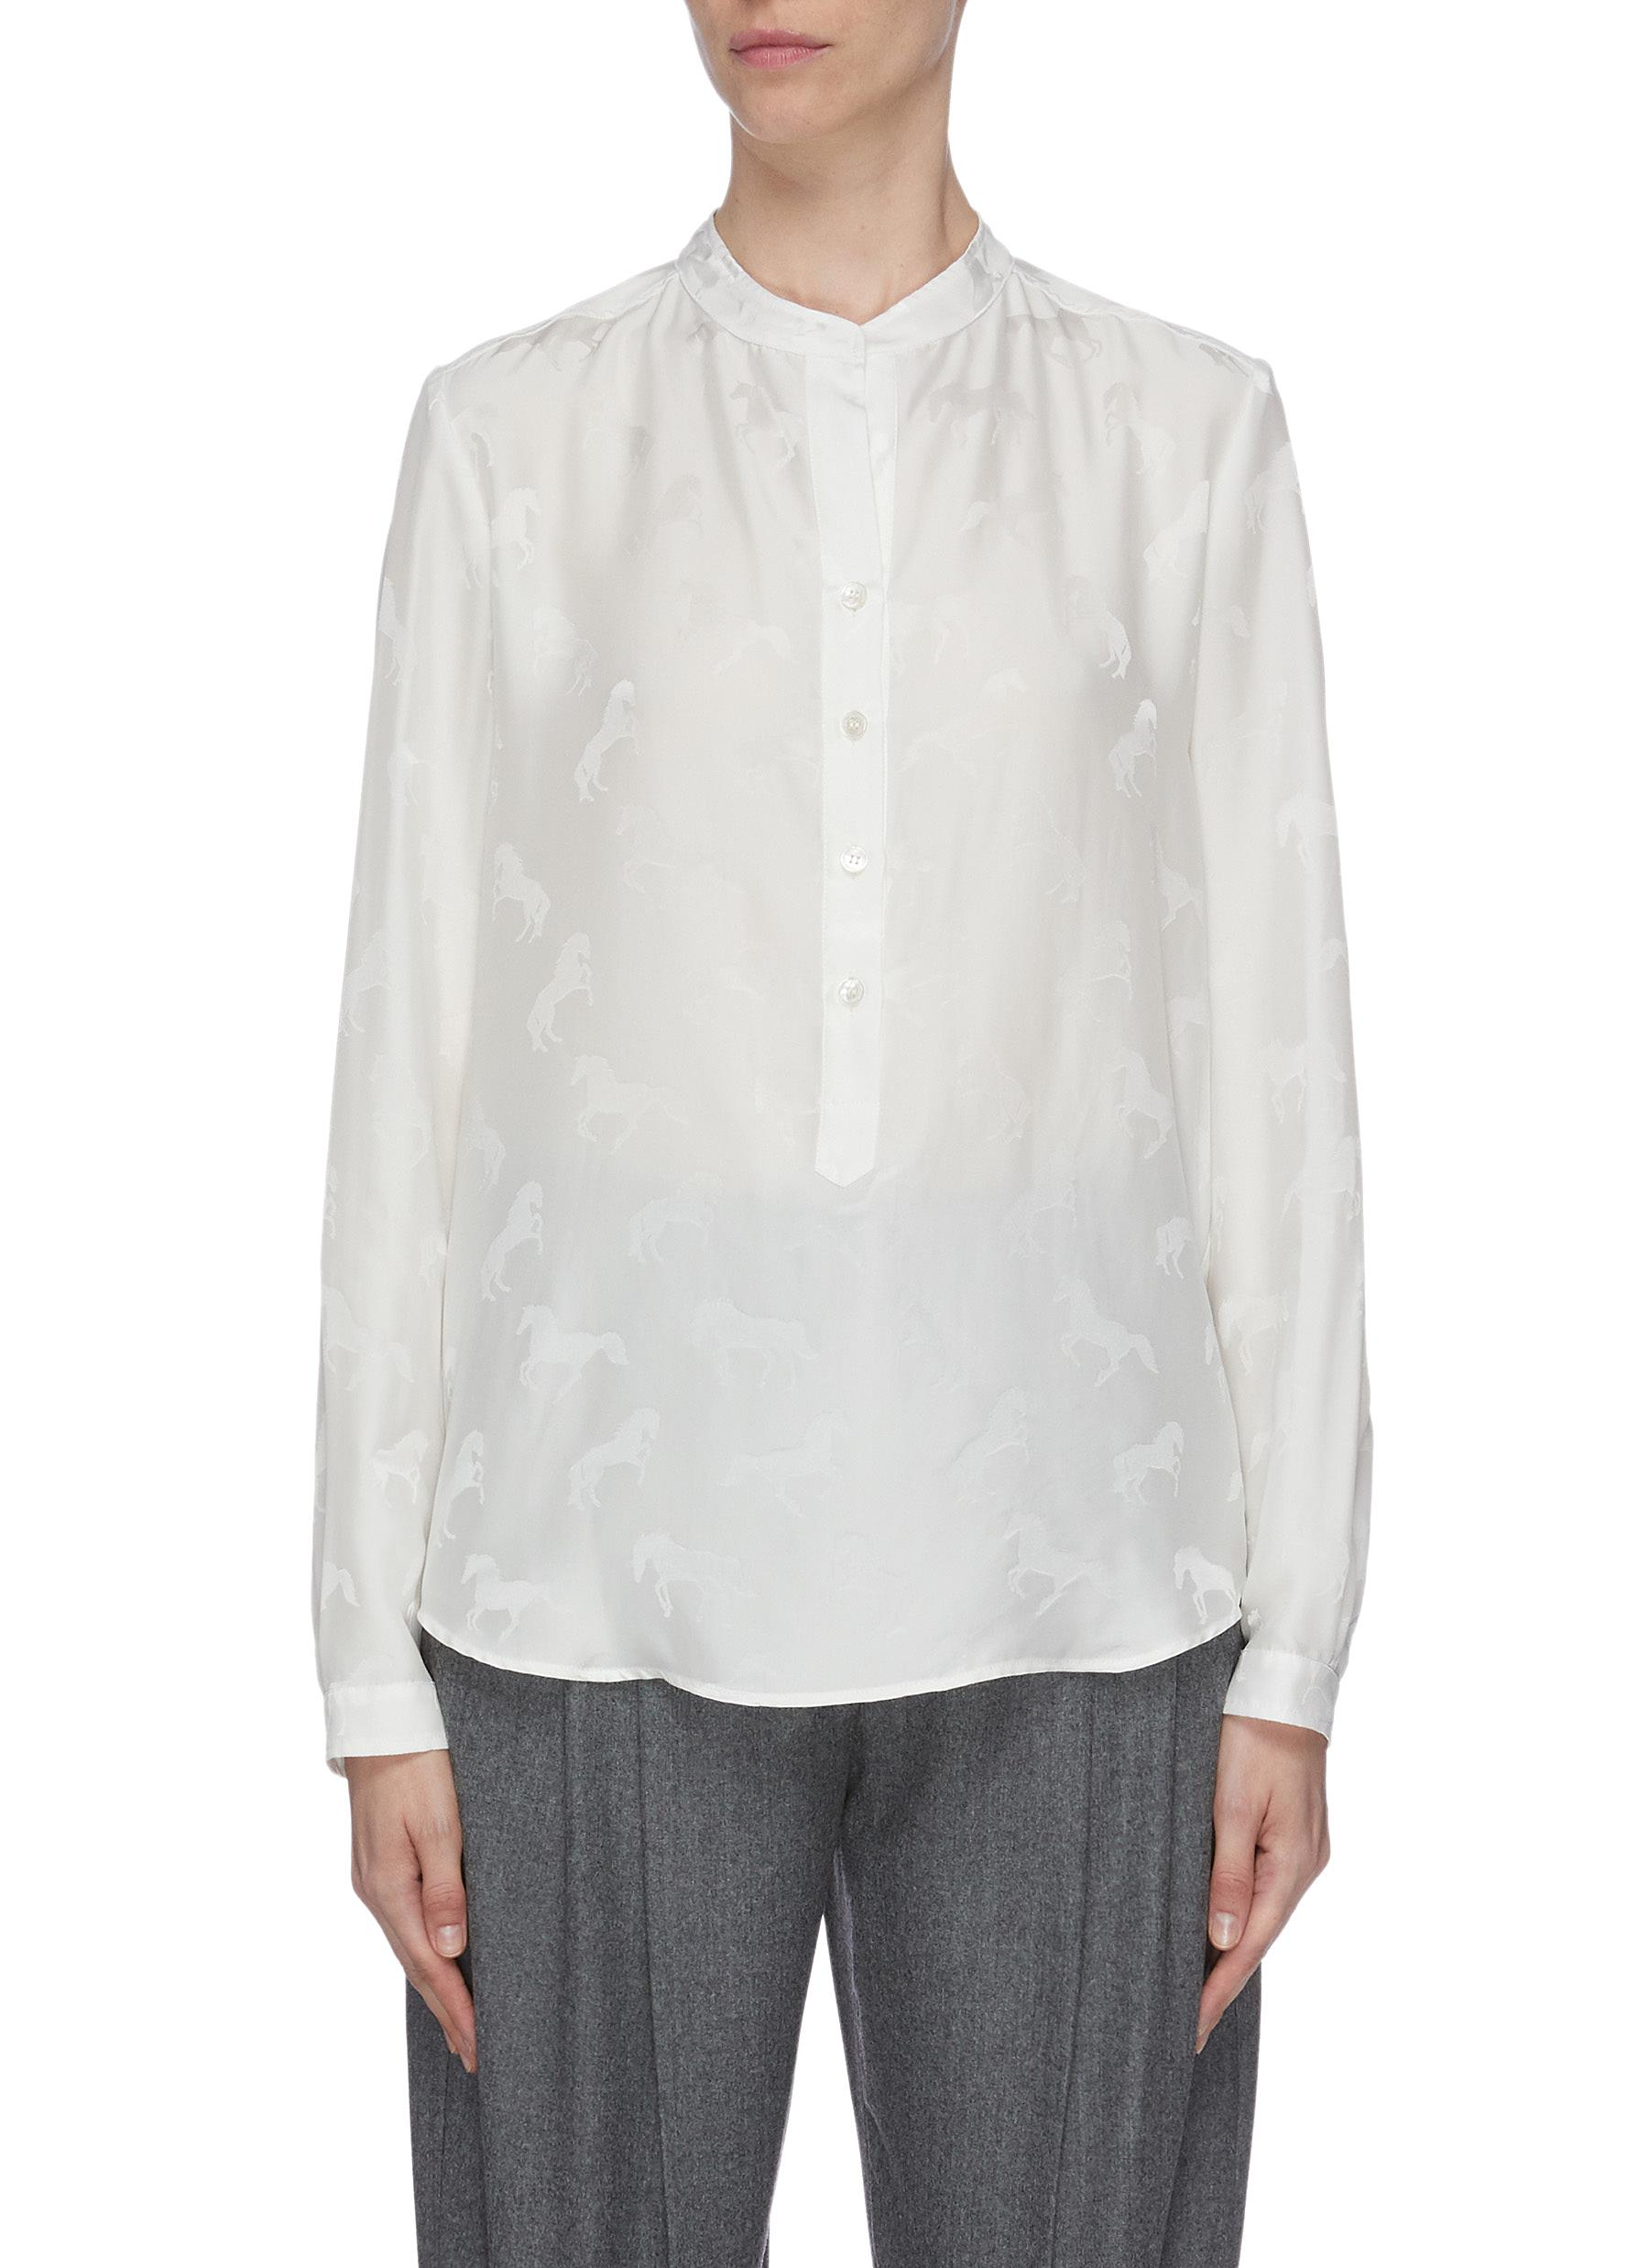 Mandarin collar horse jacquard shirt by Stella Mccartney